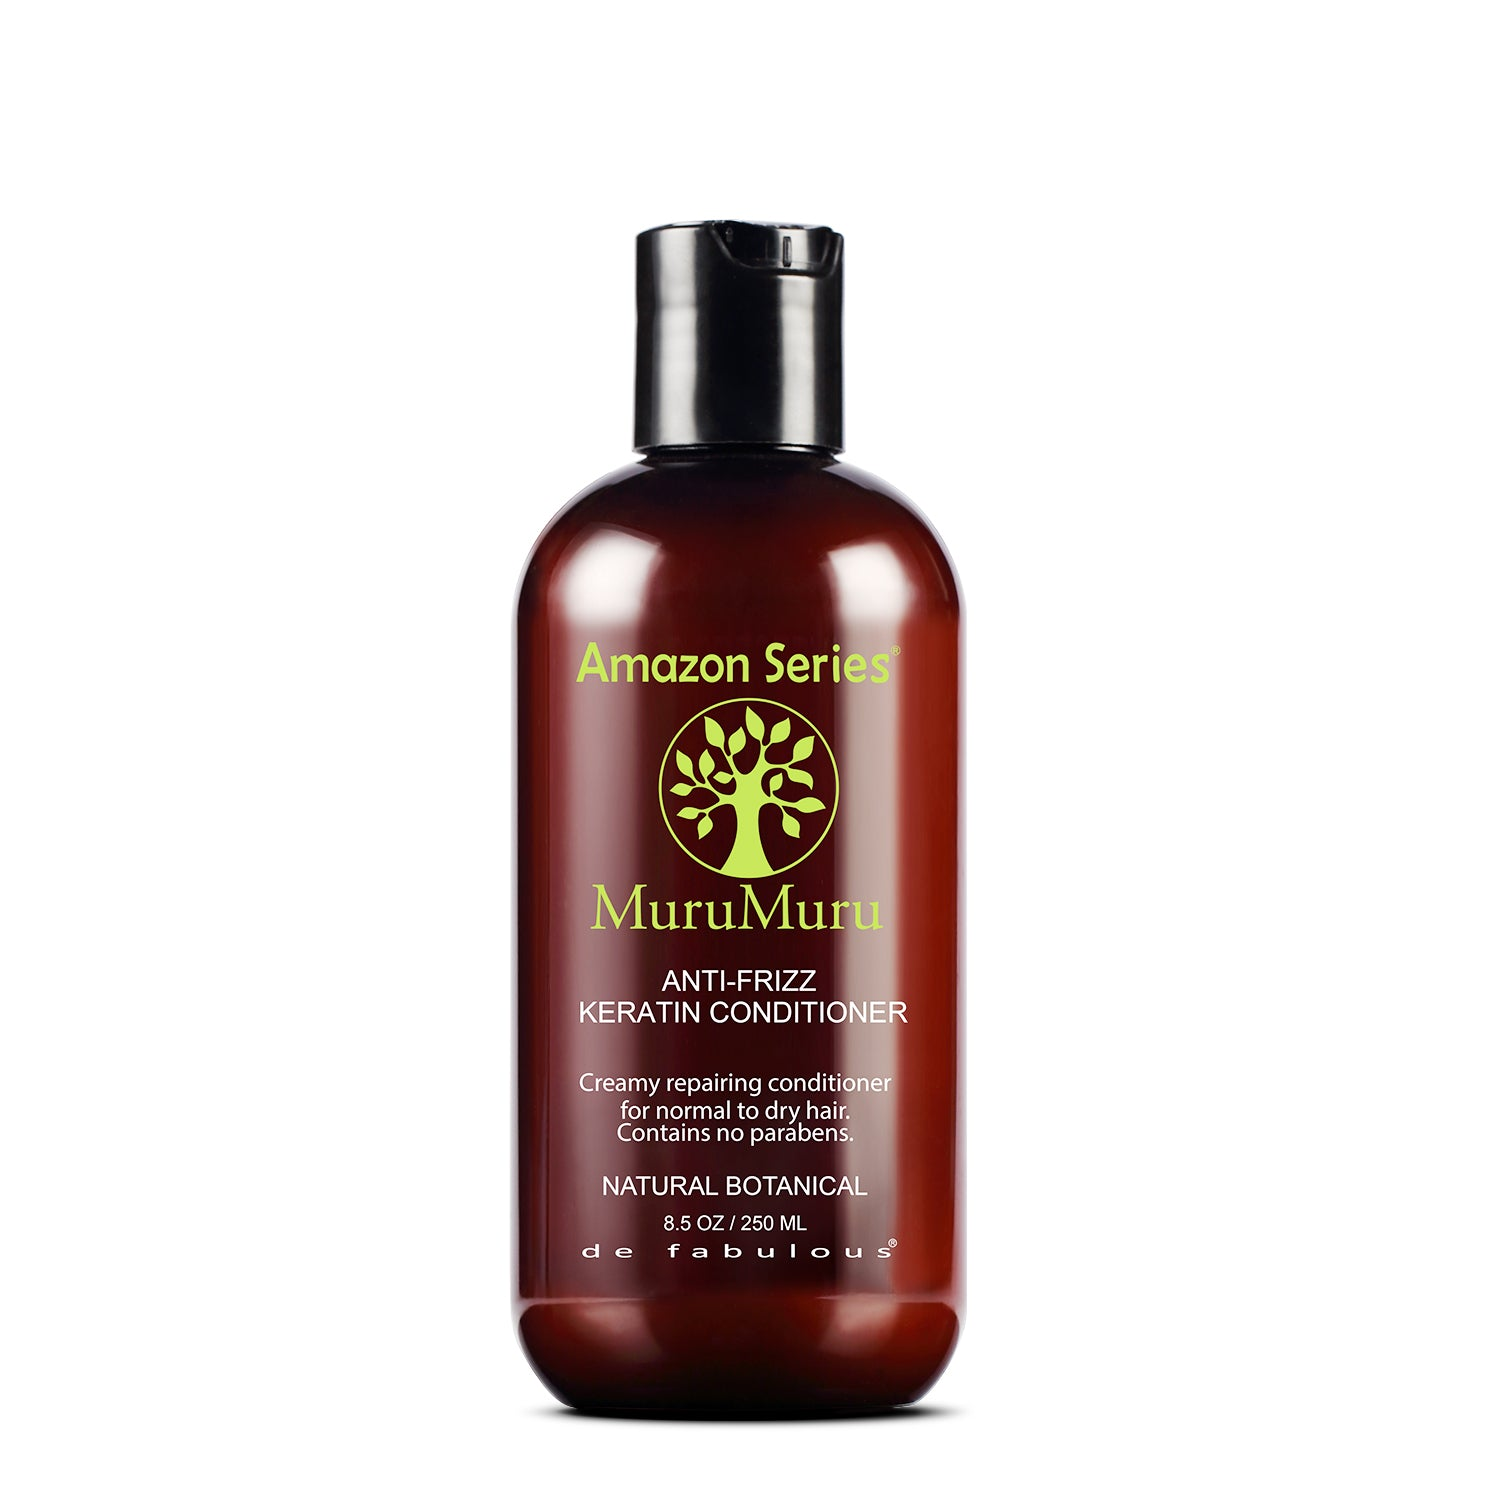 Amazon Series MuruMuru Anti-frizz Keratin Conditioner 250 ml